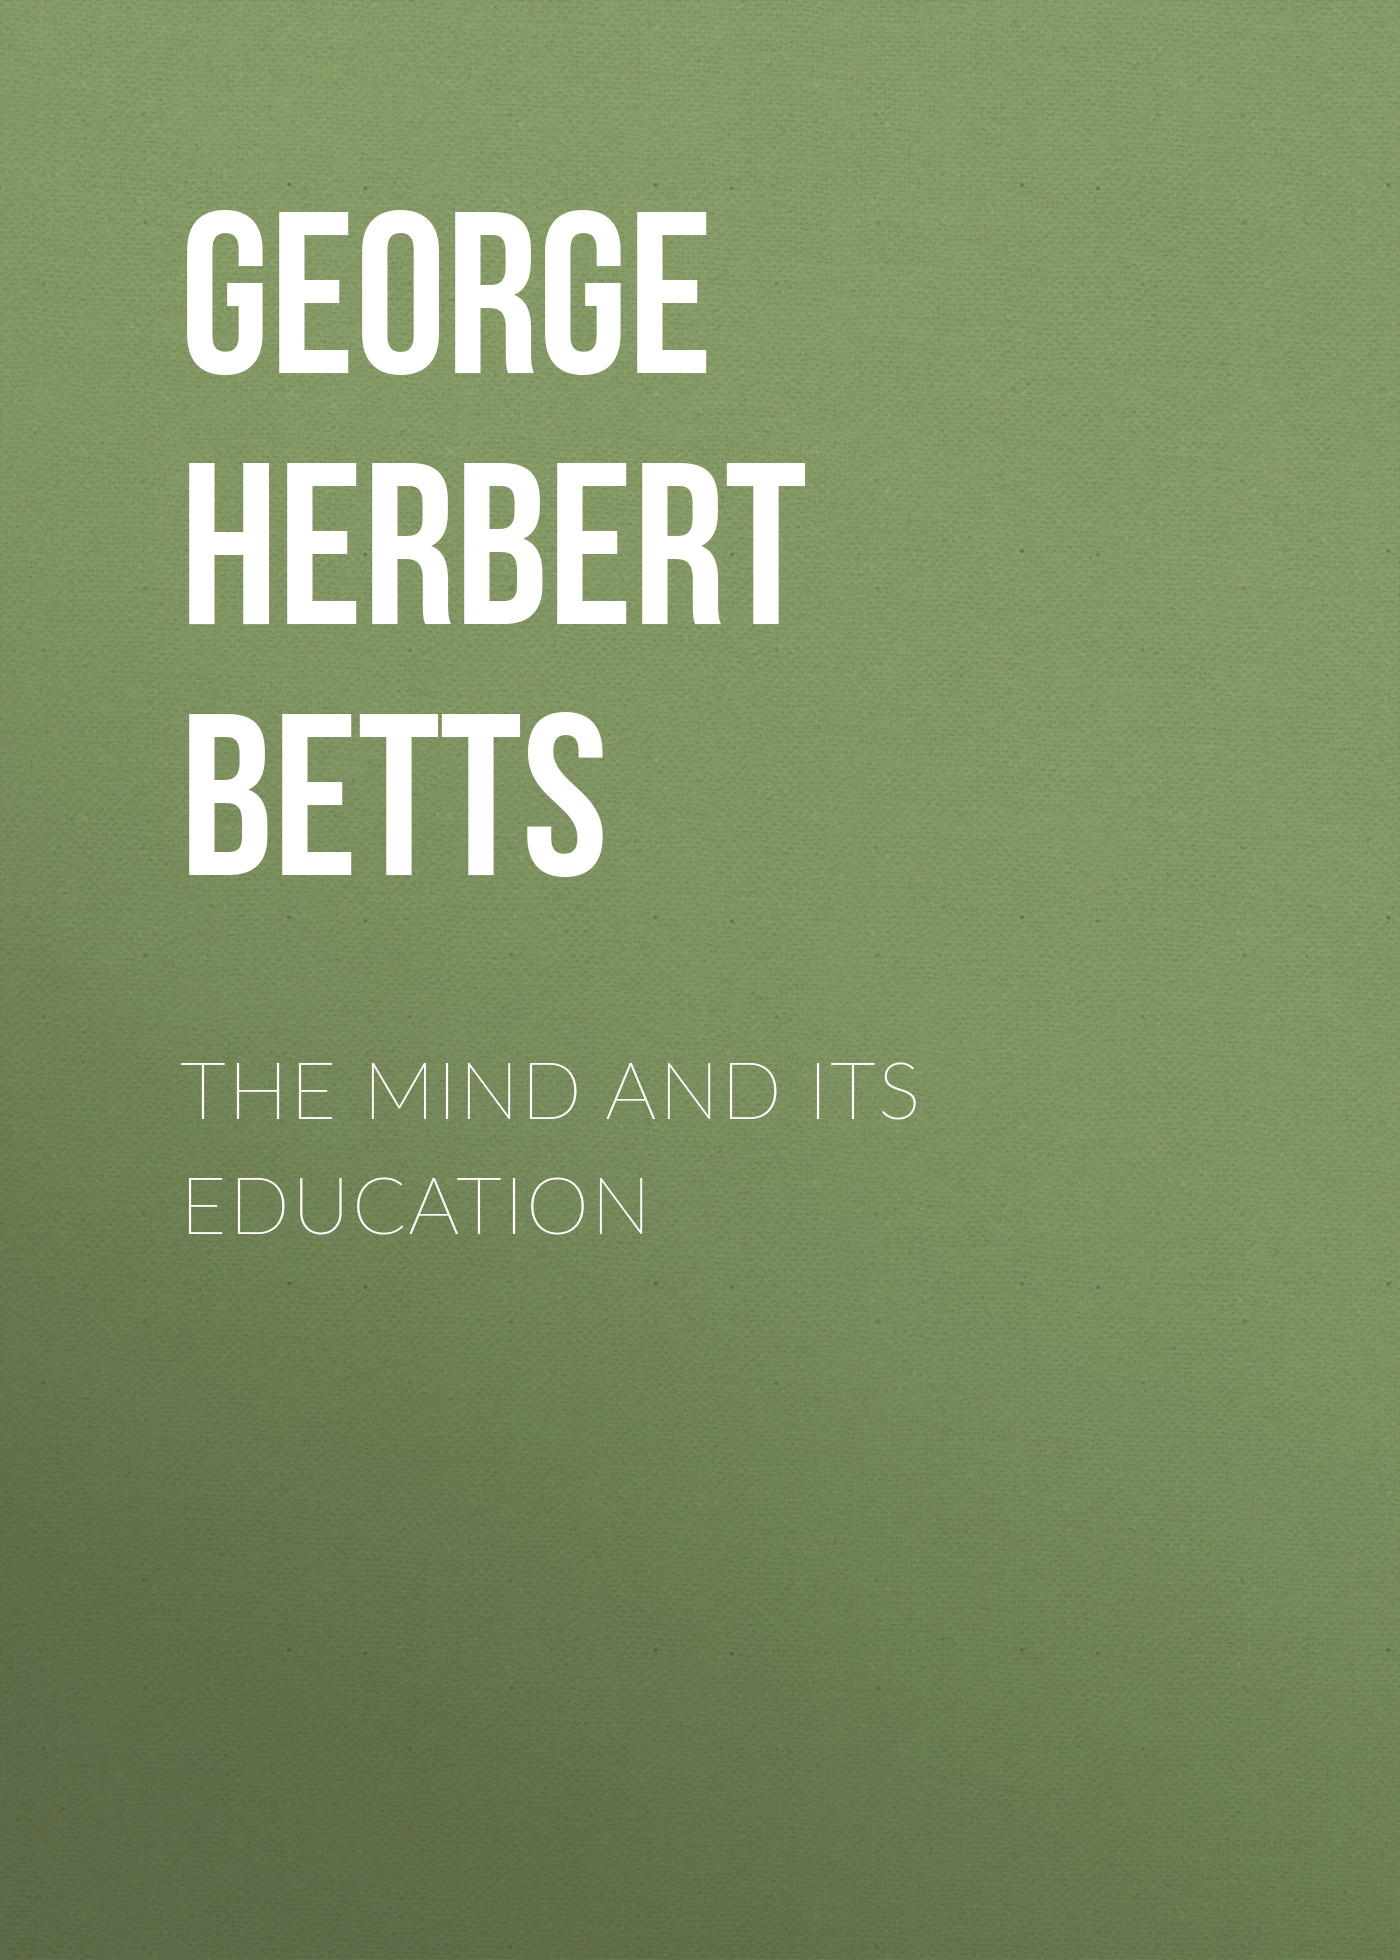 George Herbert Betts The Mind and Its Education